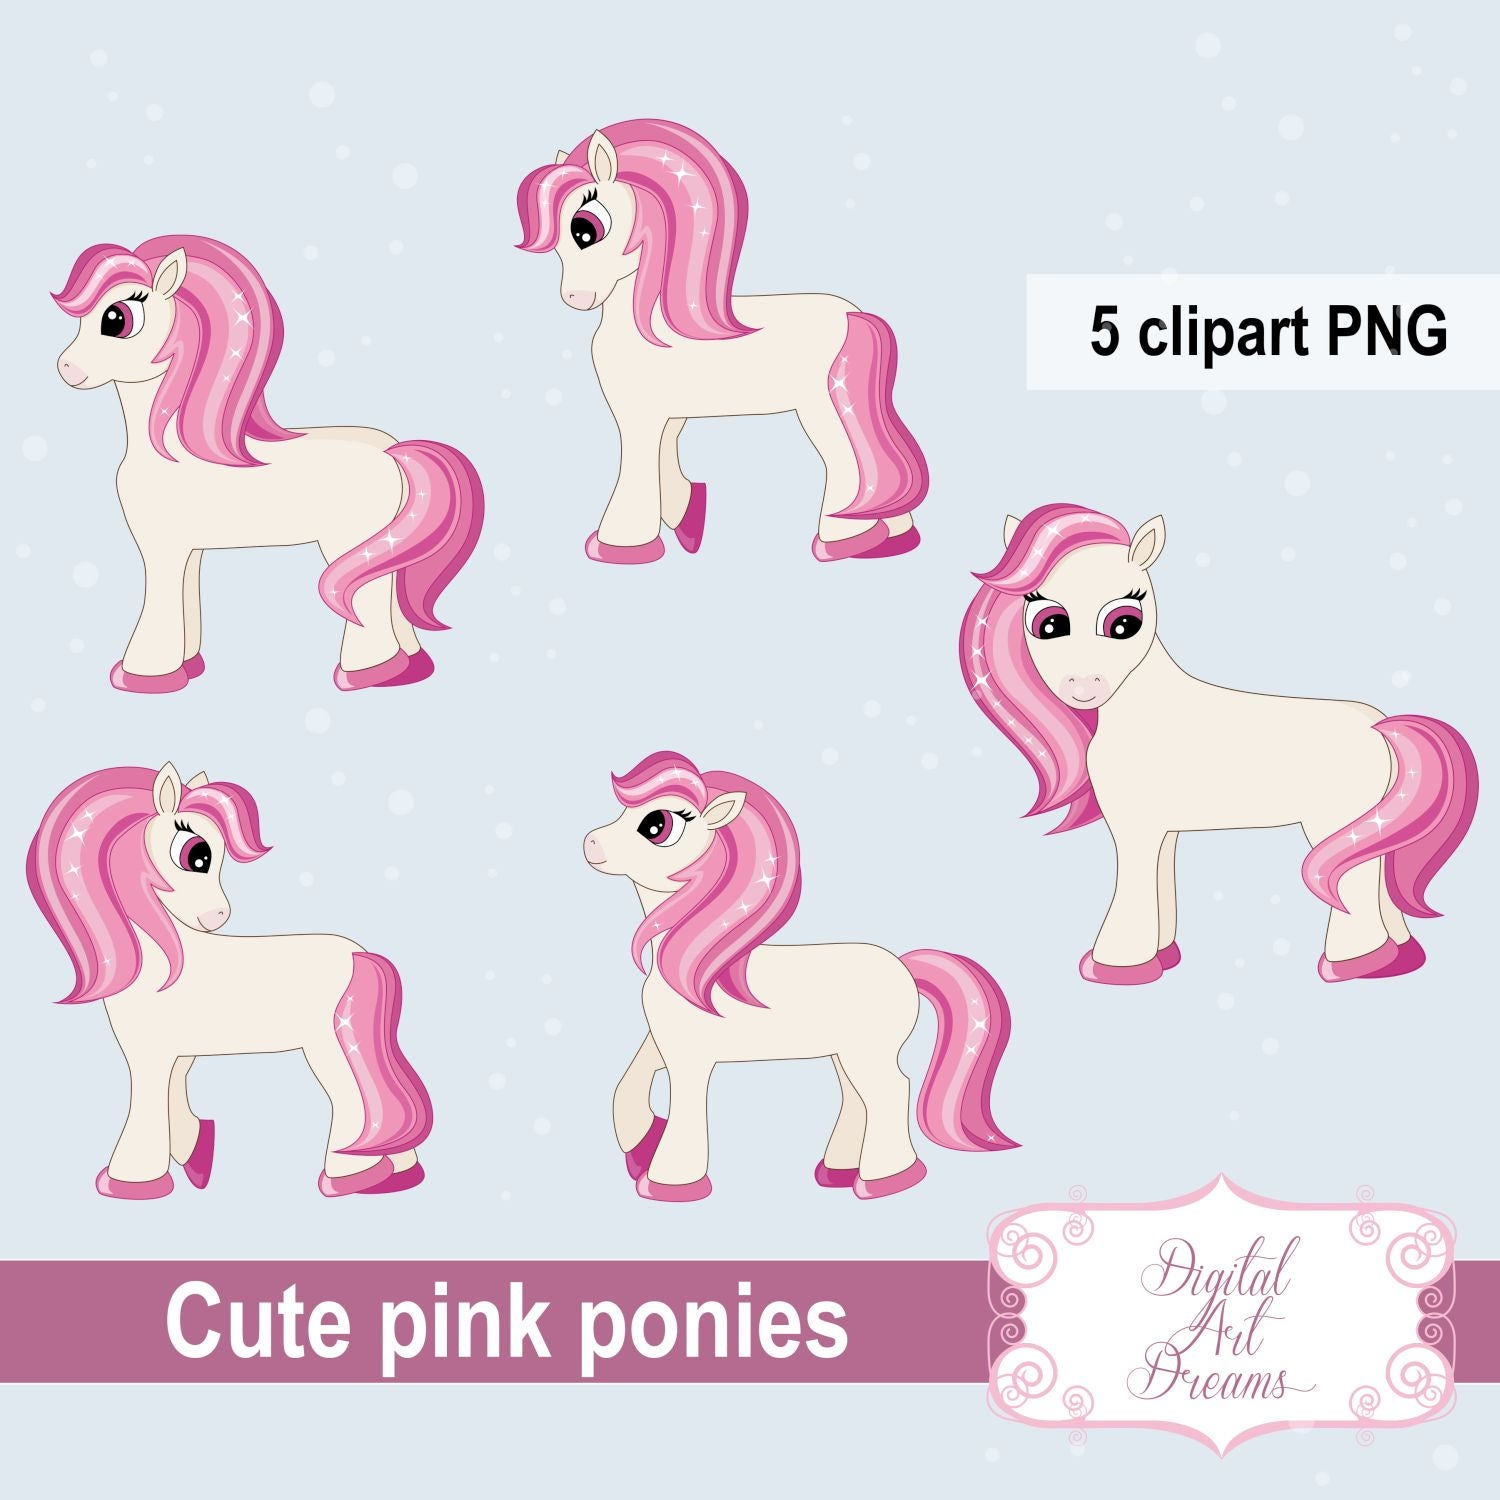 Pink Pony Clipart, Cute Animal Graphics, Ponies, Party Printables, Digital  Scrapbooking, Card Making, Embroidery, Planner Stickers, Birthday.